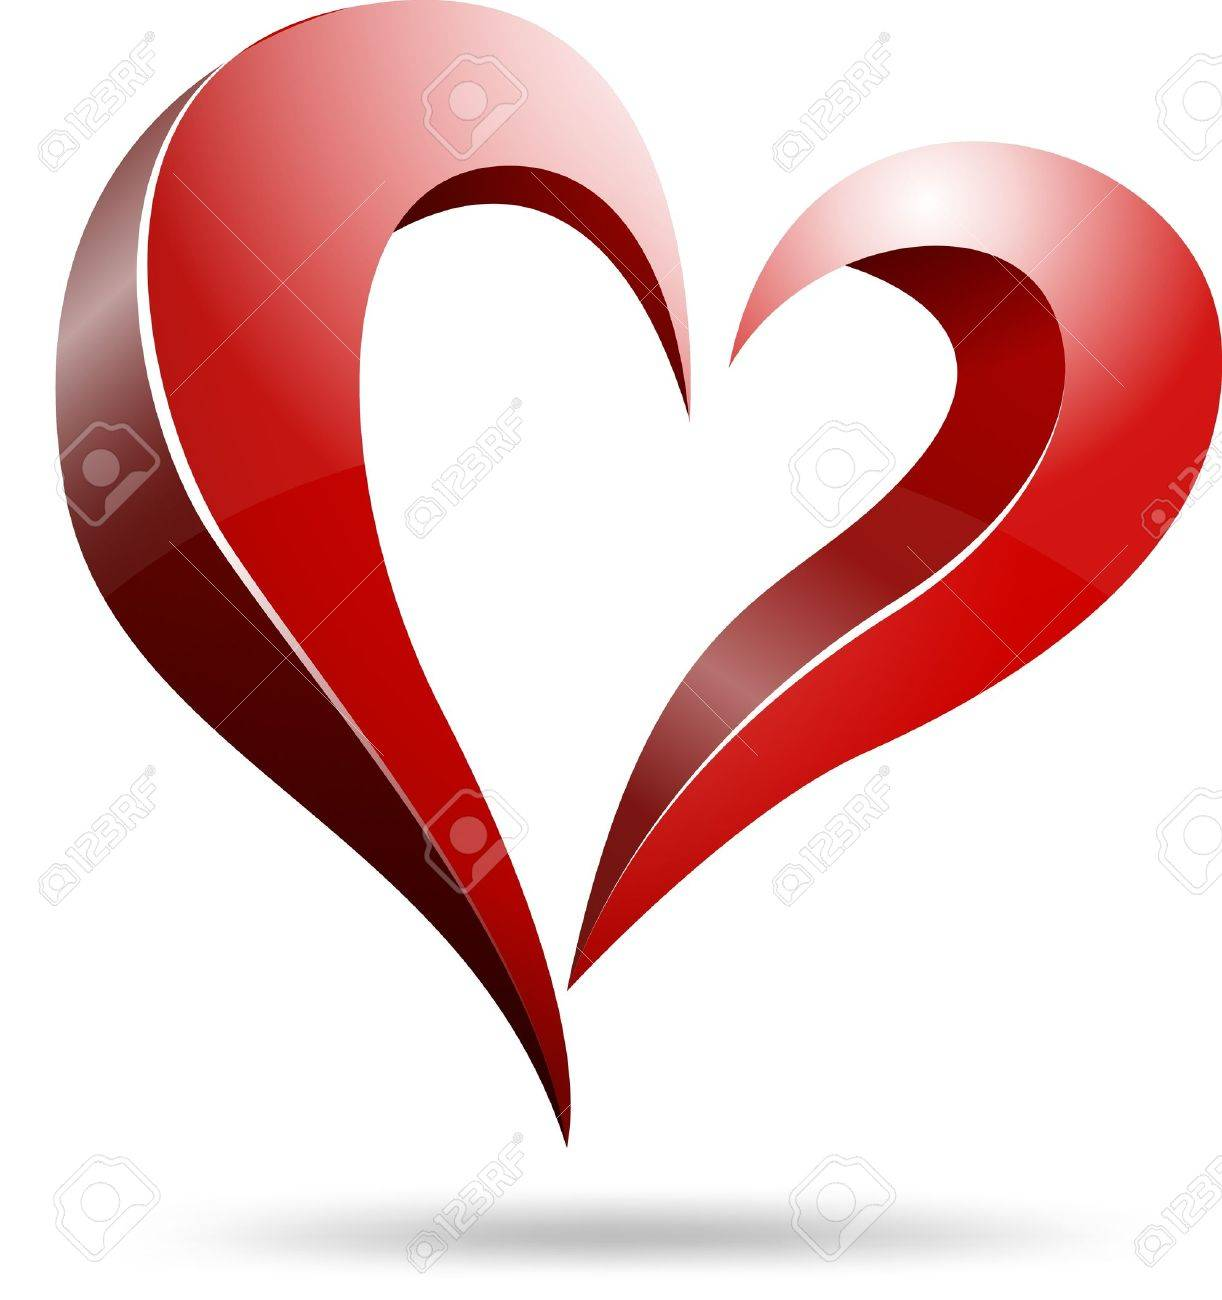 Logo heart shape design Stock Vector - 19970188